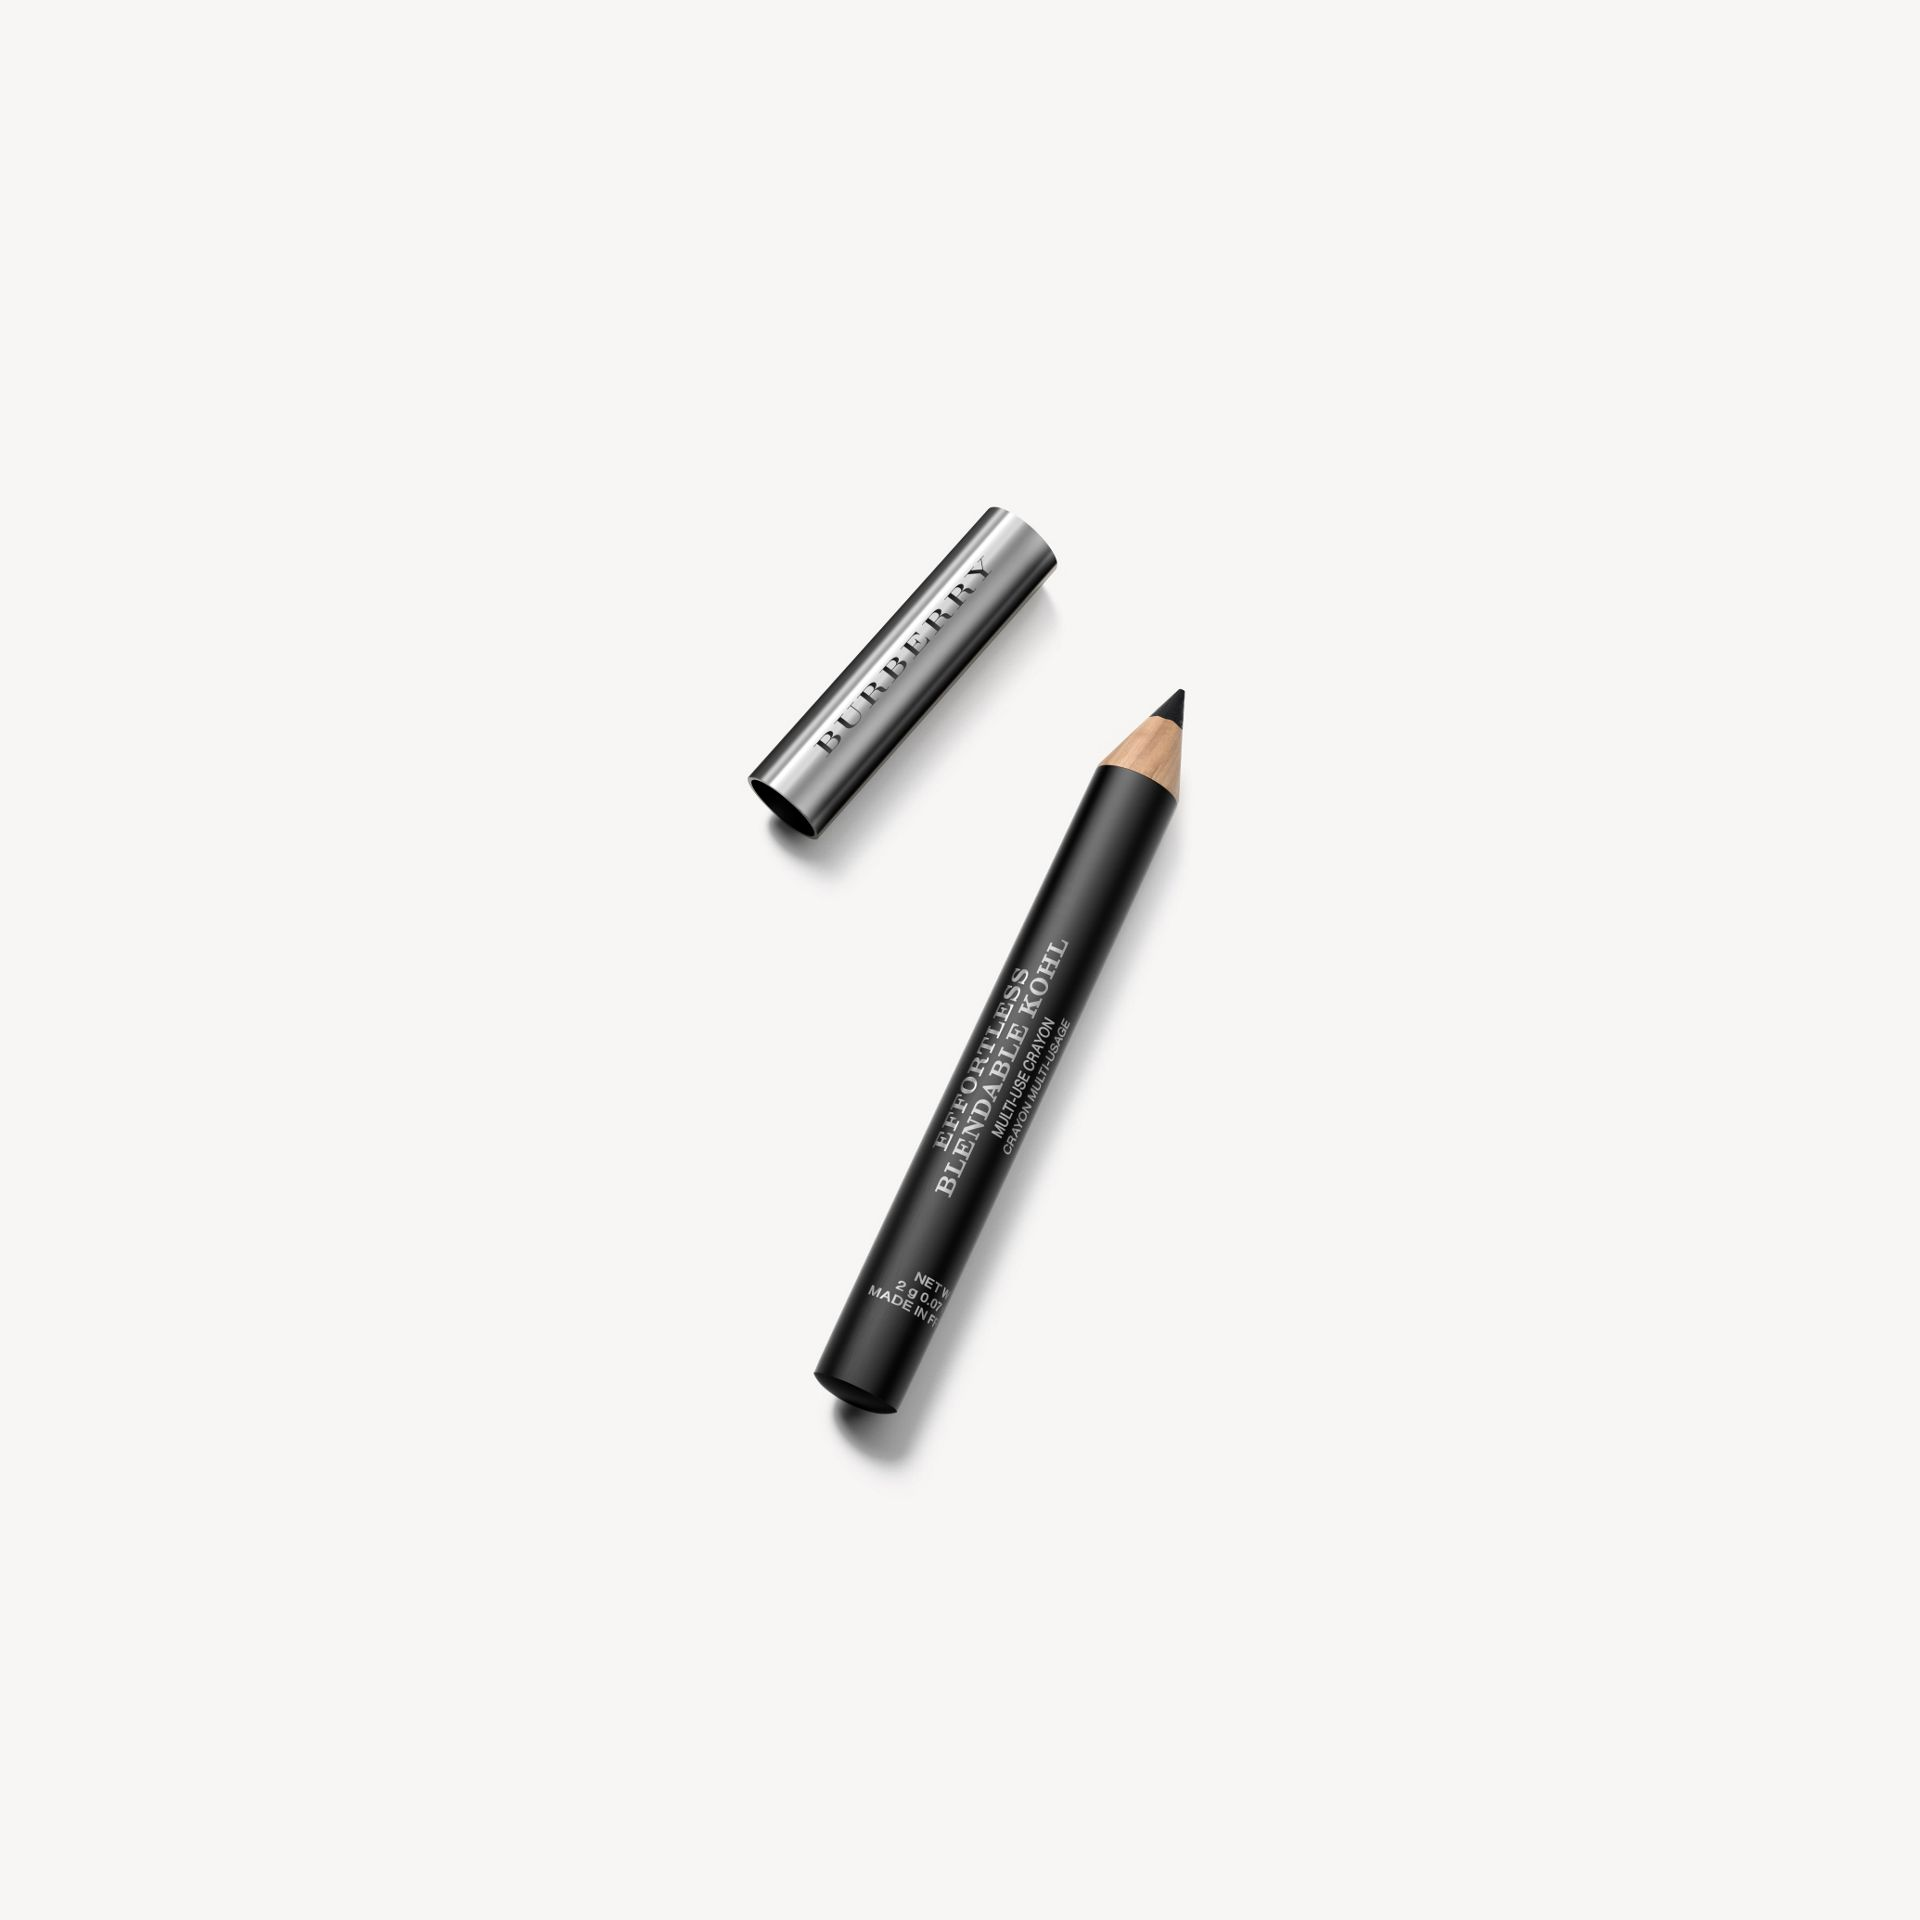 Jet black 01 Effortless Blendable Kohl – Jet Black No.01 - galeria de imagens 1